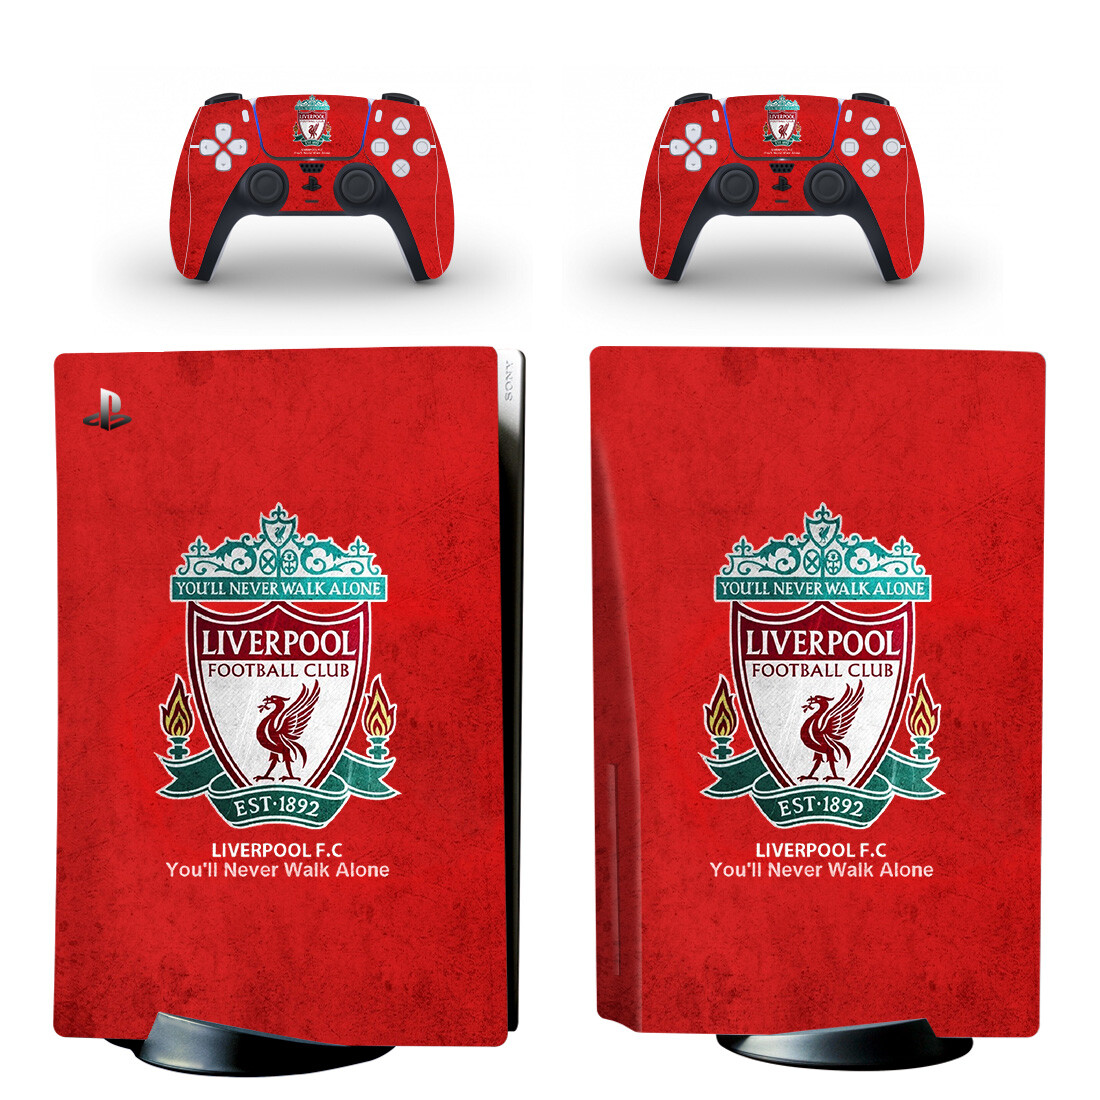 Liverpool Football Club Skin Sticker For PlayStation 5 And Controllers